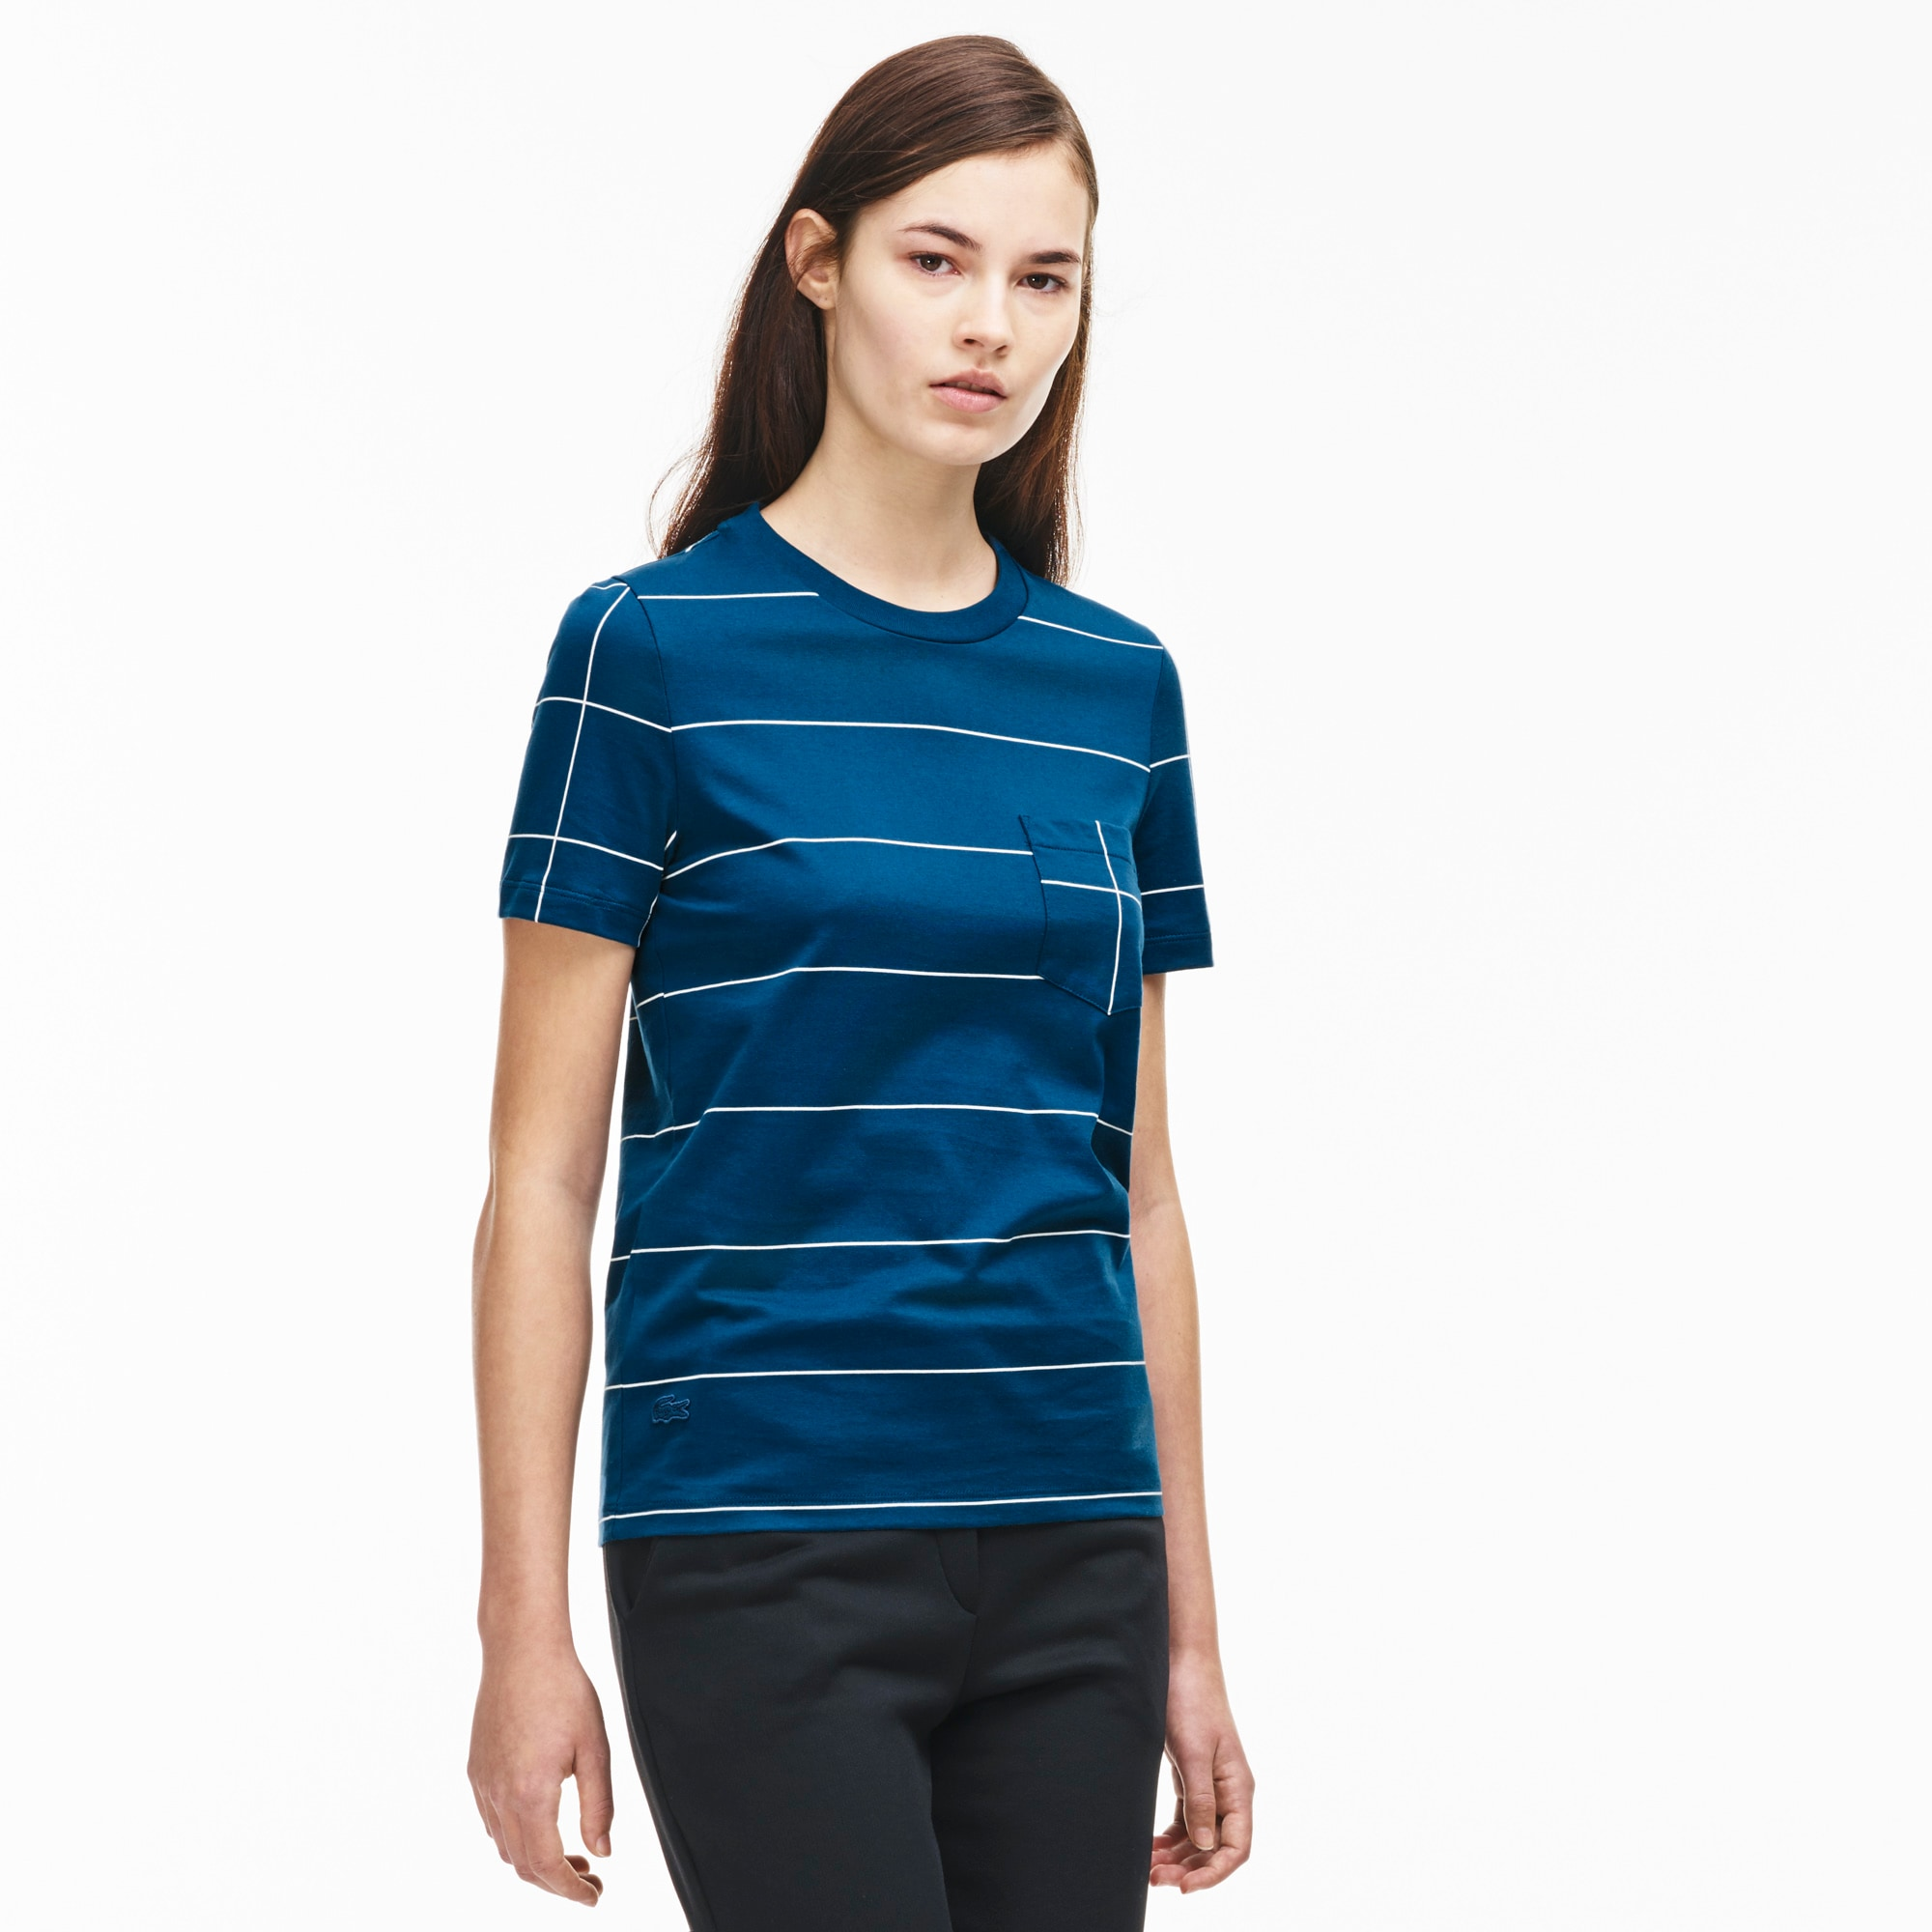 Women's Windowpane Print Cotton T-Shirt